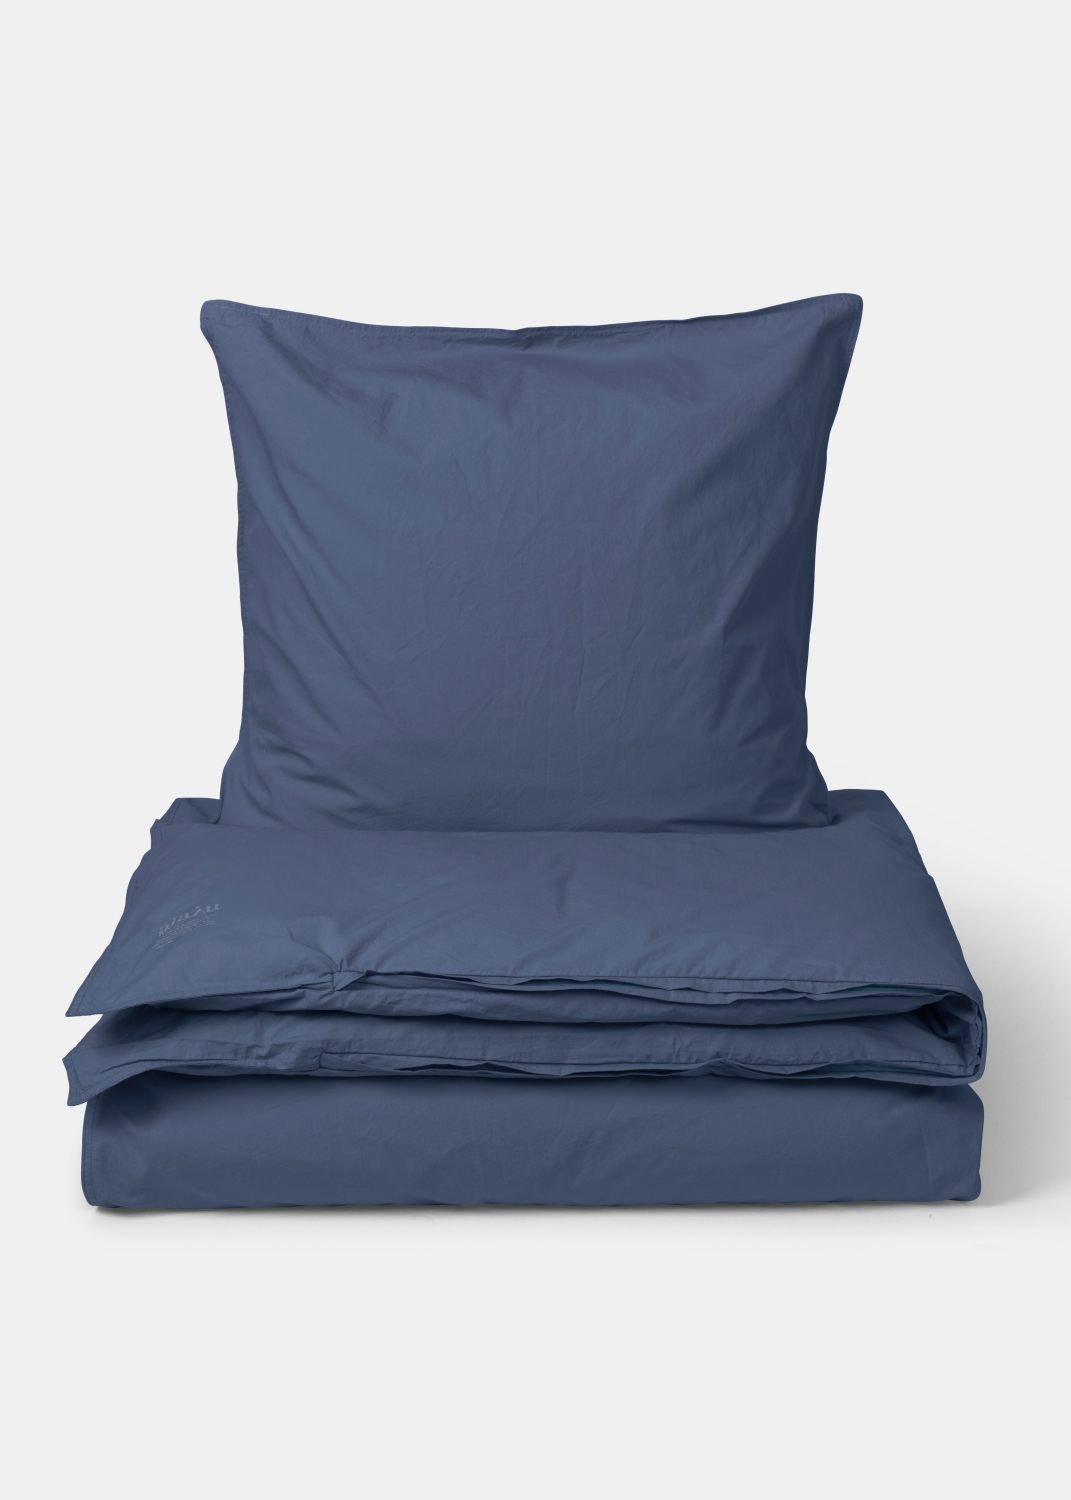 Bedlinen - Duvet Set - Single (140x200 + pillow case)  Thumbnail